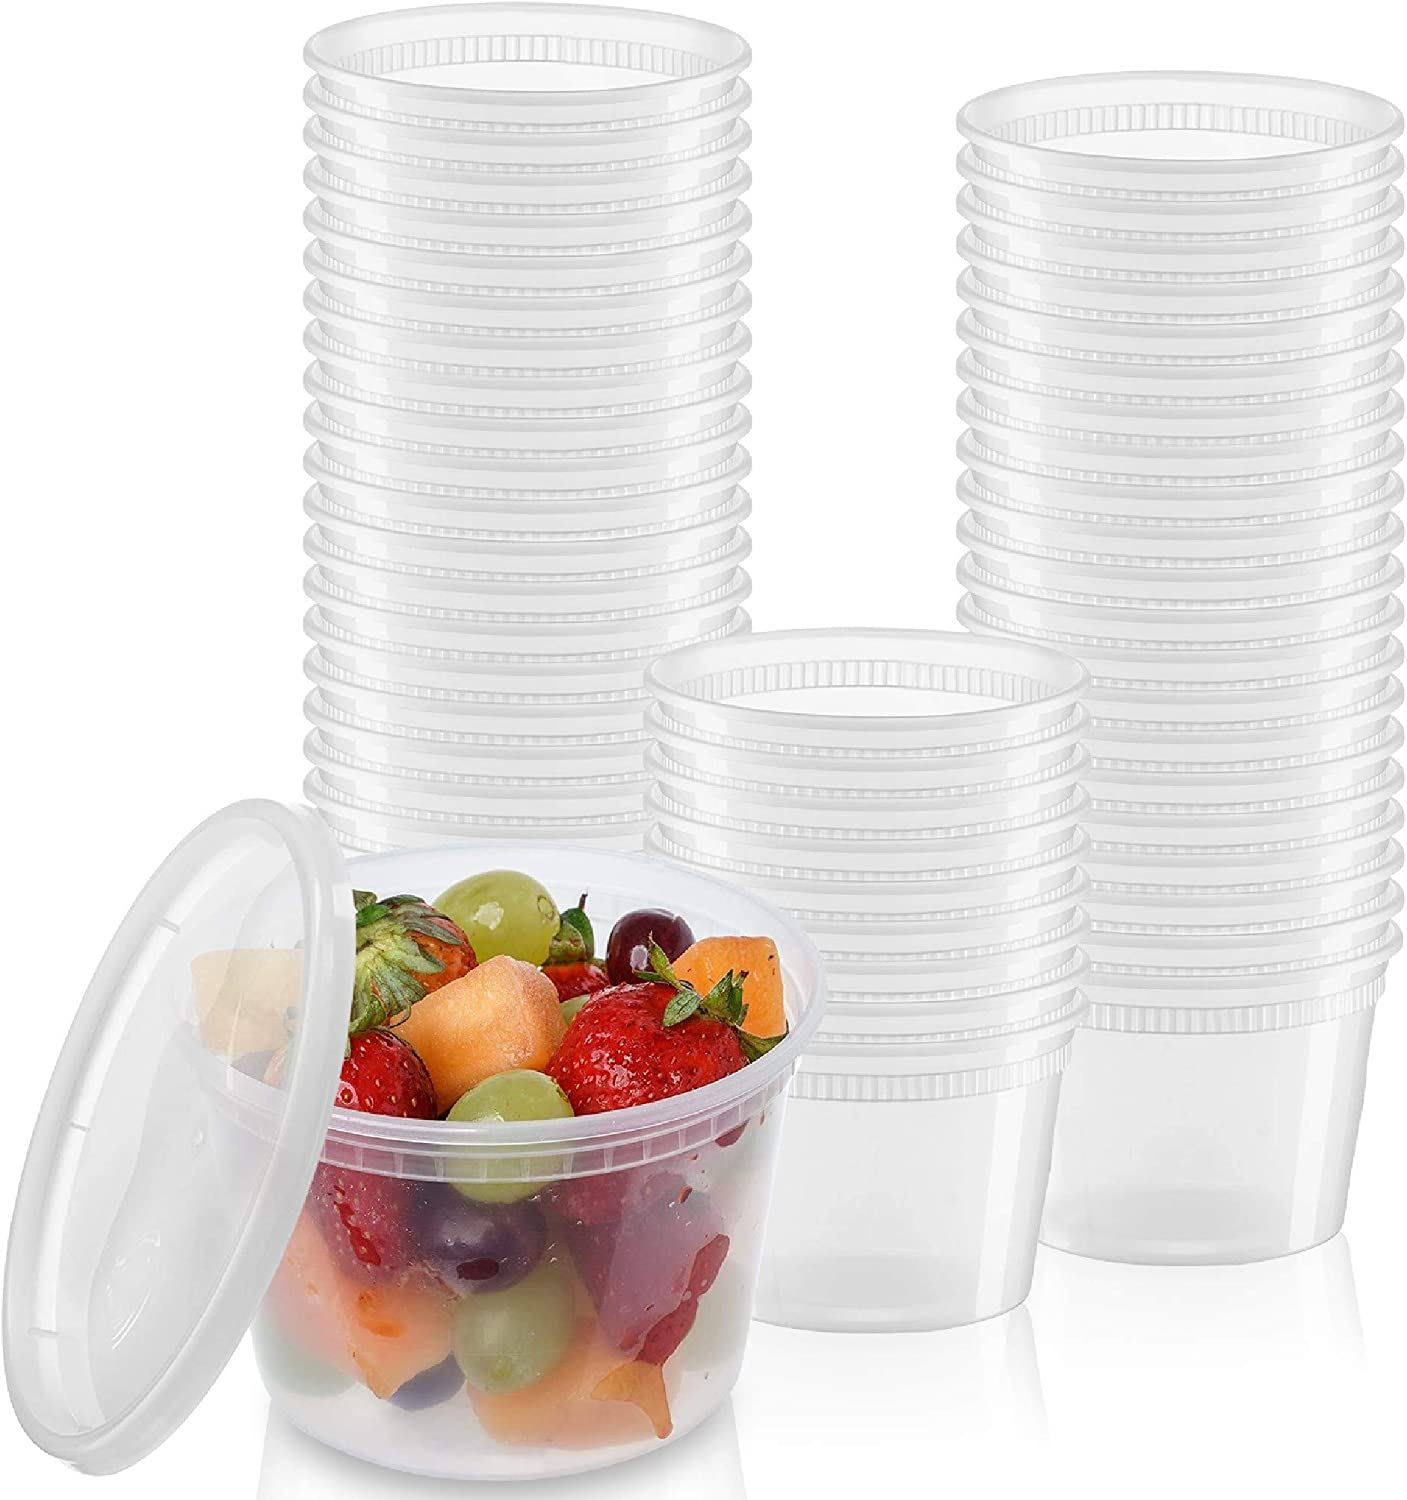 24 Sets - 16 oz. Plastic Deli Containers Storage New mail order Food Freezer Store